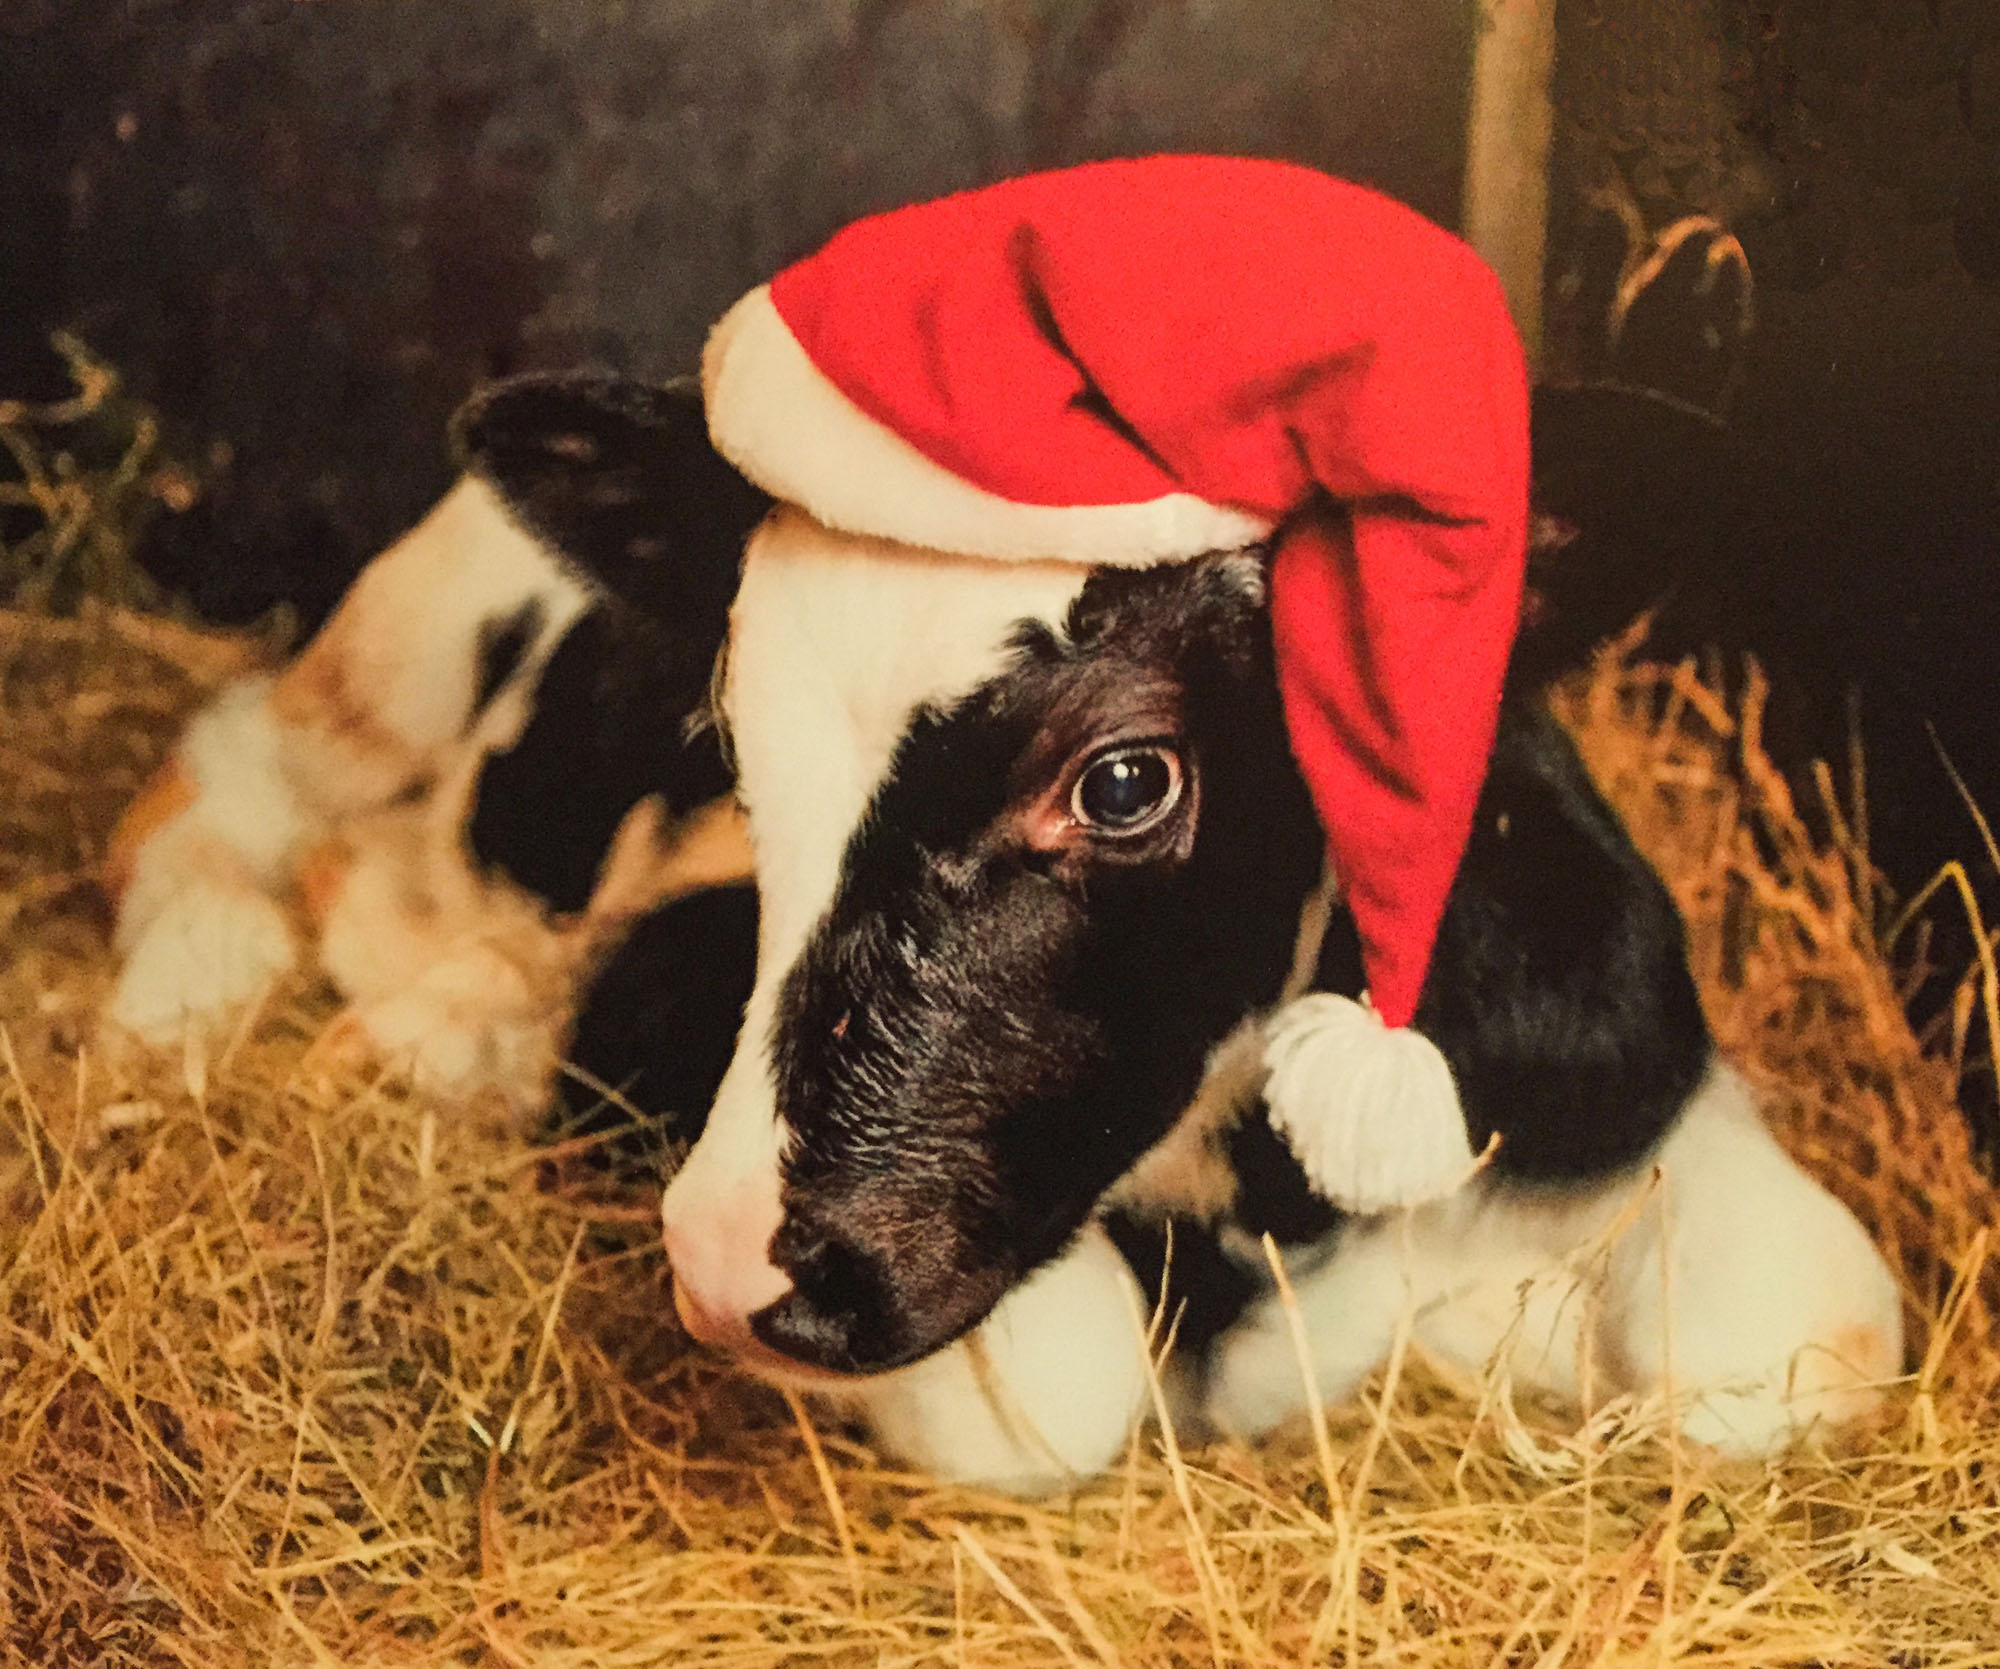 Merry Christmas from the calves.